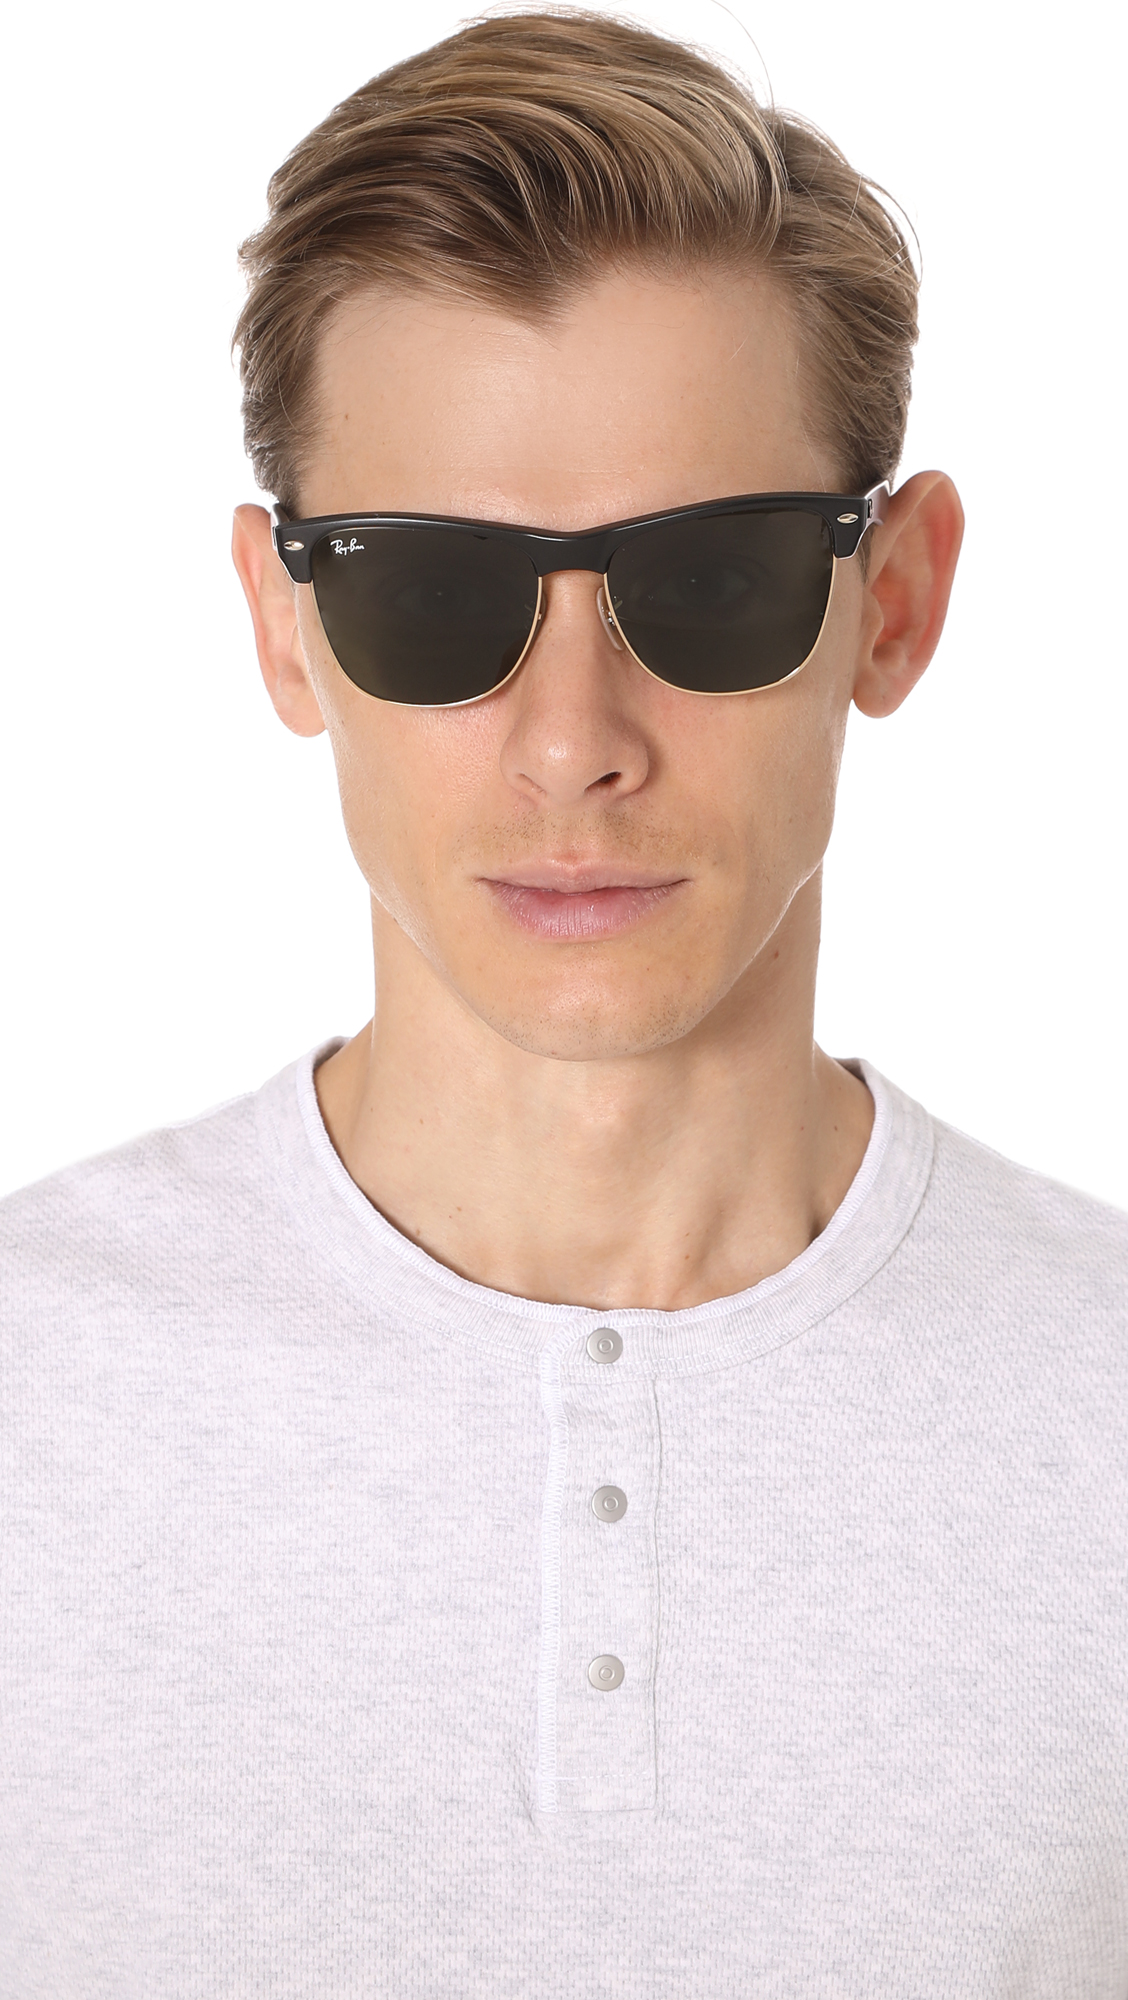 ae22f1fba1 Ray-Ban Clubmaster Oversized Sunglasses